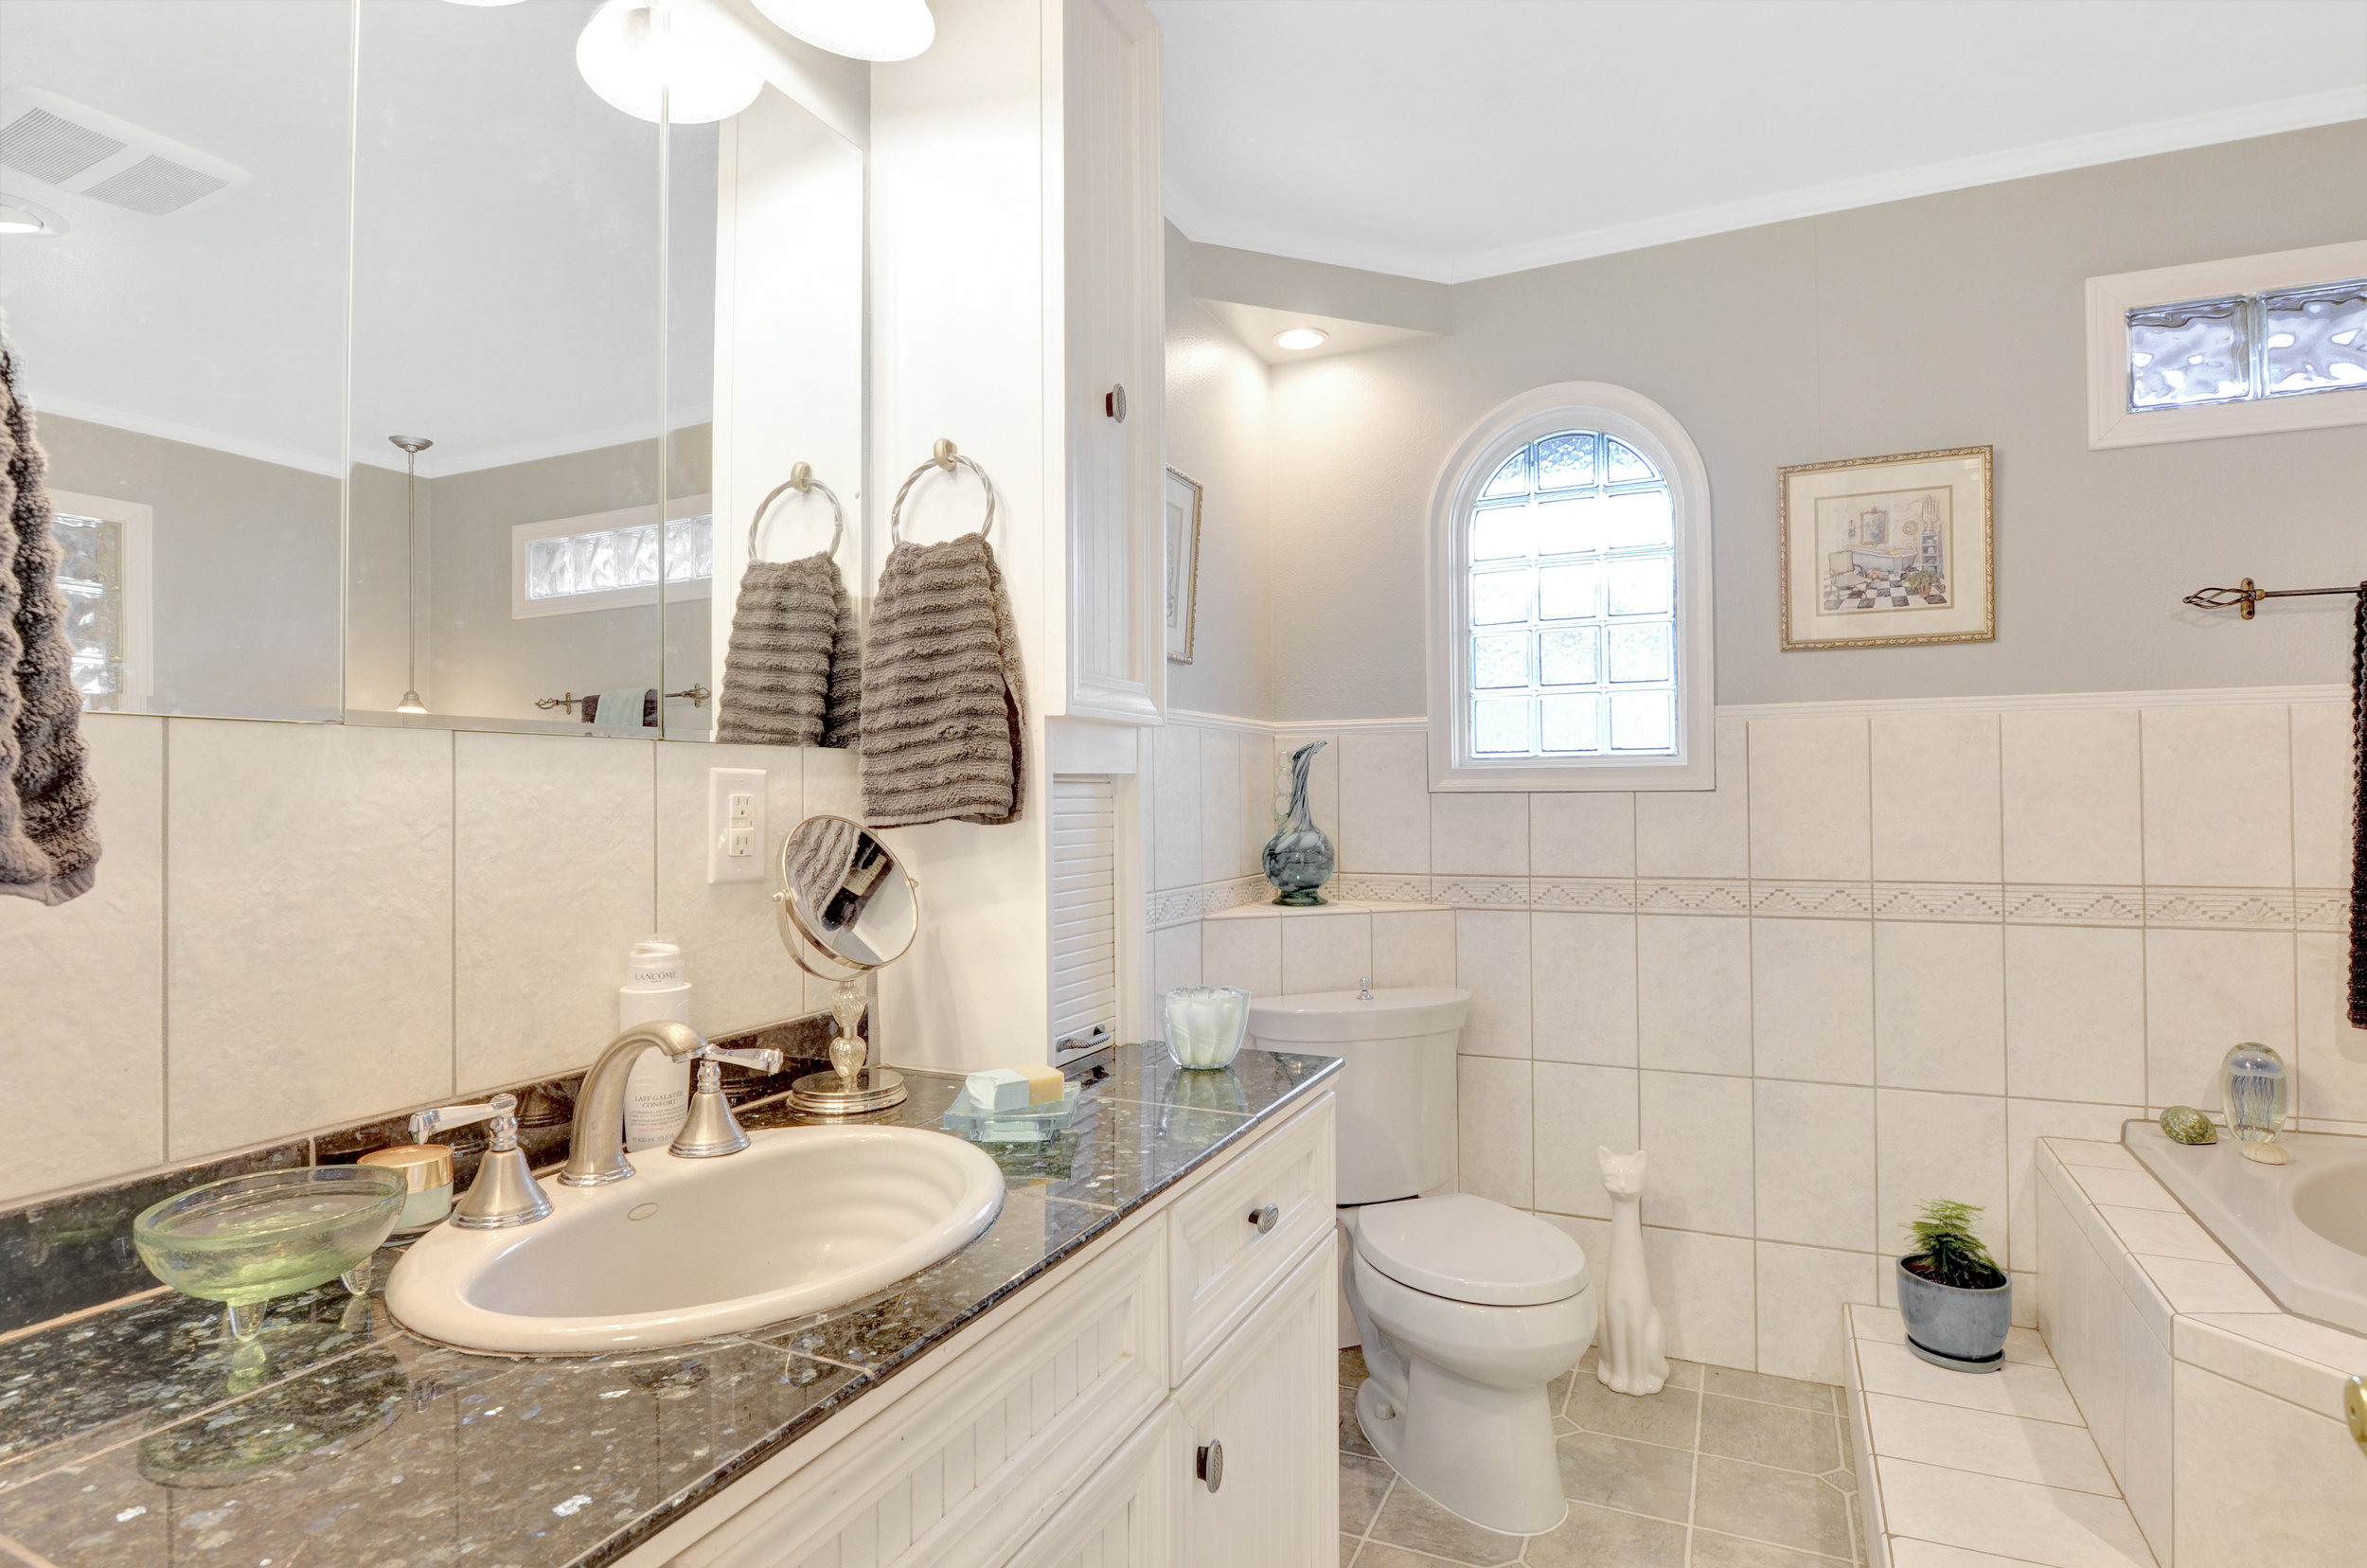 Full bath includes a tiled-in corner tub with Roman faucet, a separate stall shower, and large vanity with glass tile countertop.